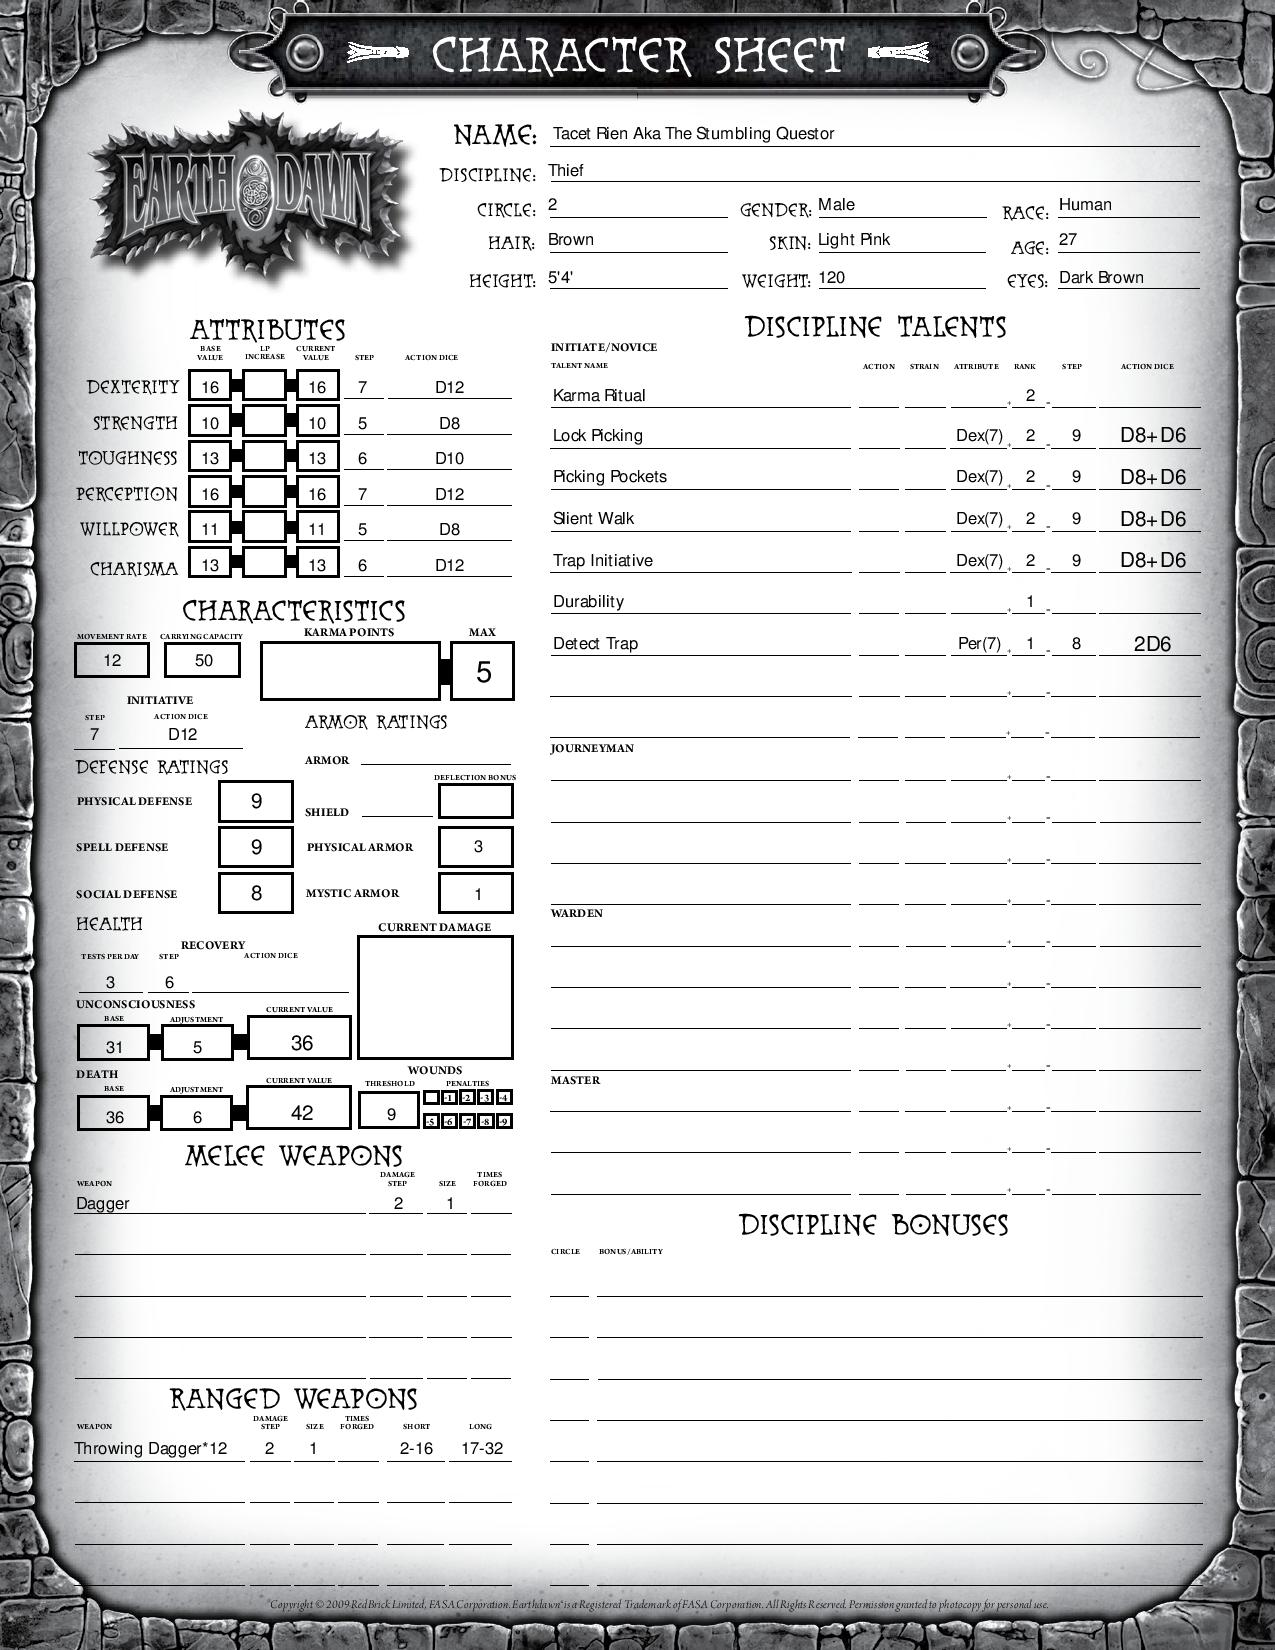 Earthdawn_Thief-page-001.jpg